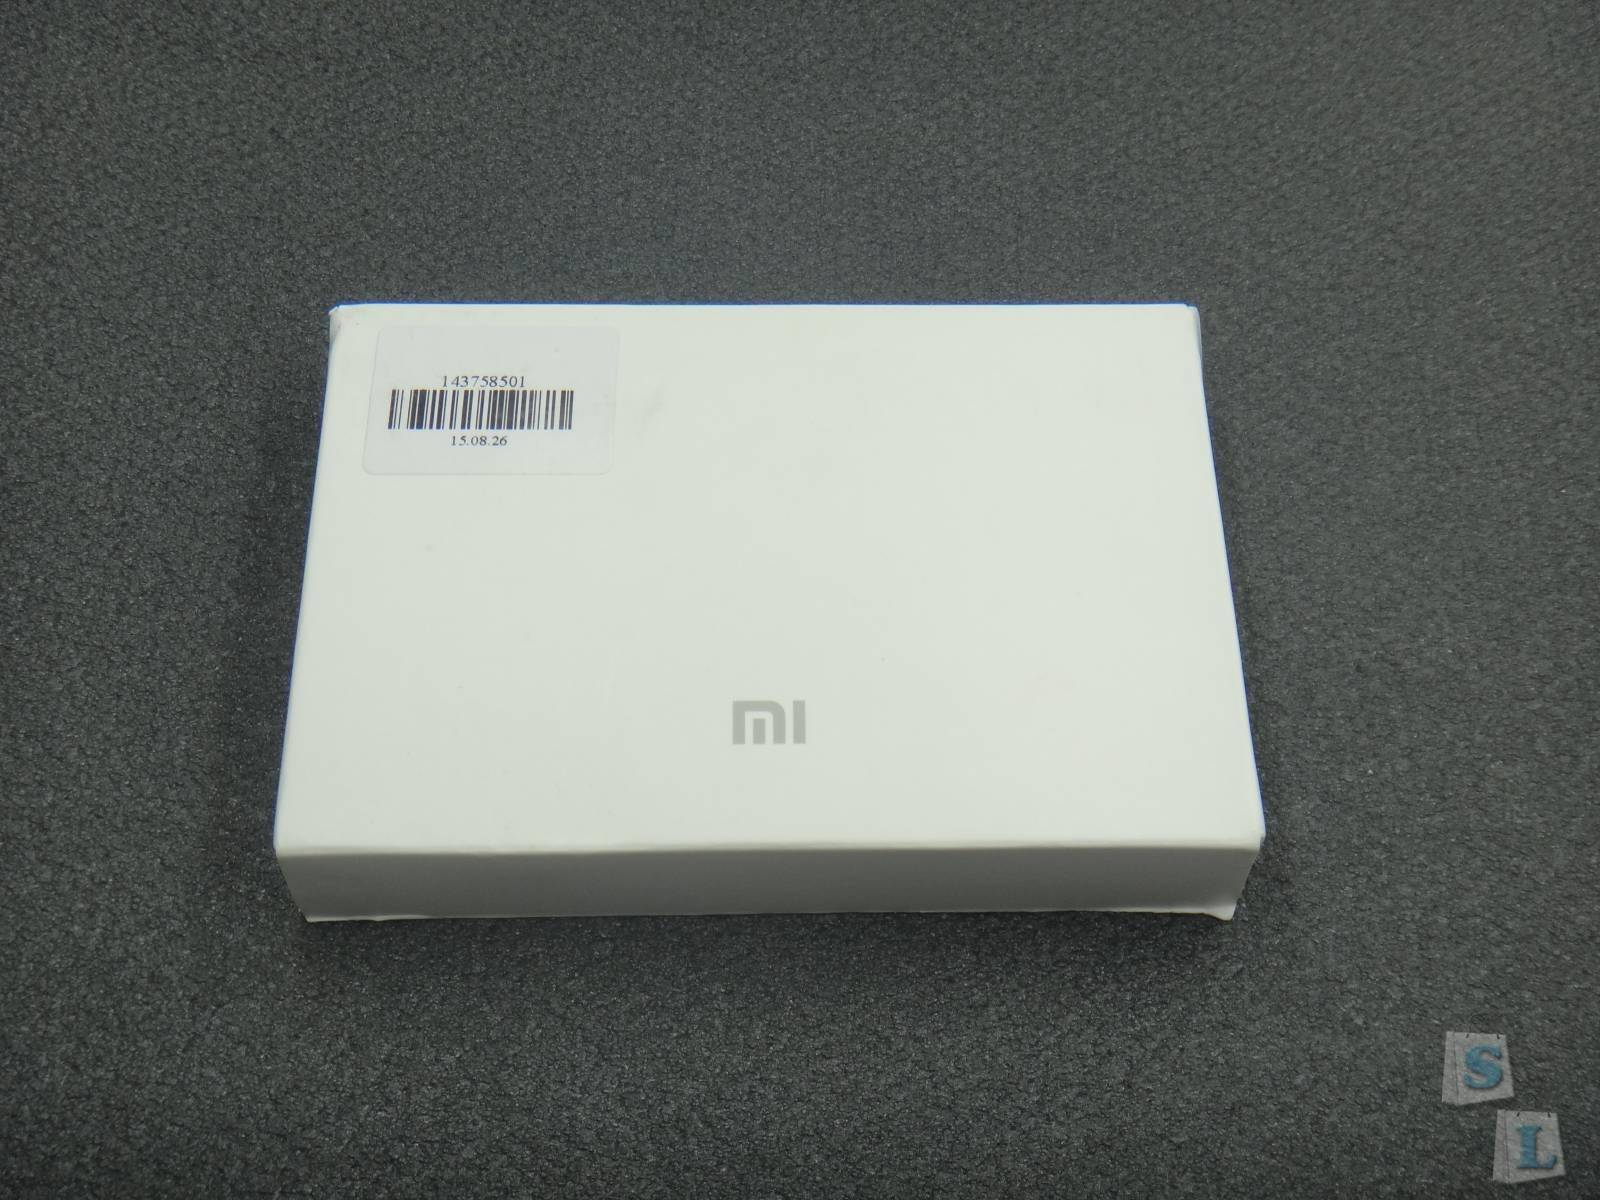 GearBest: Обзор роутера XiaoMi Mi WiFi Router Youth Edition - младший брат XiaoMi Mi WiFi Router